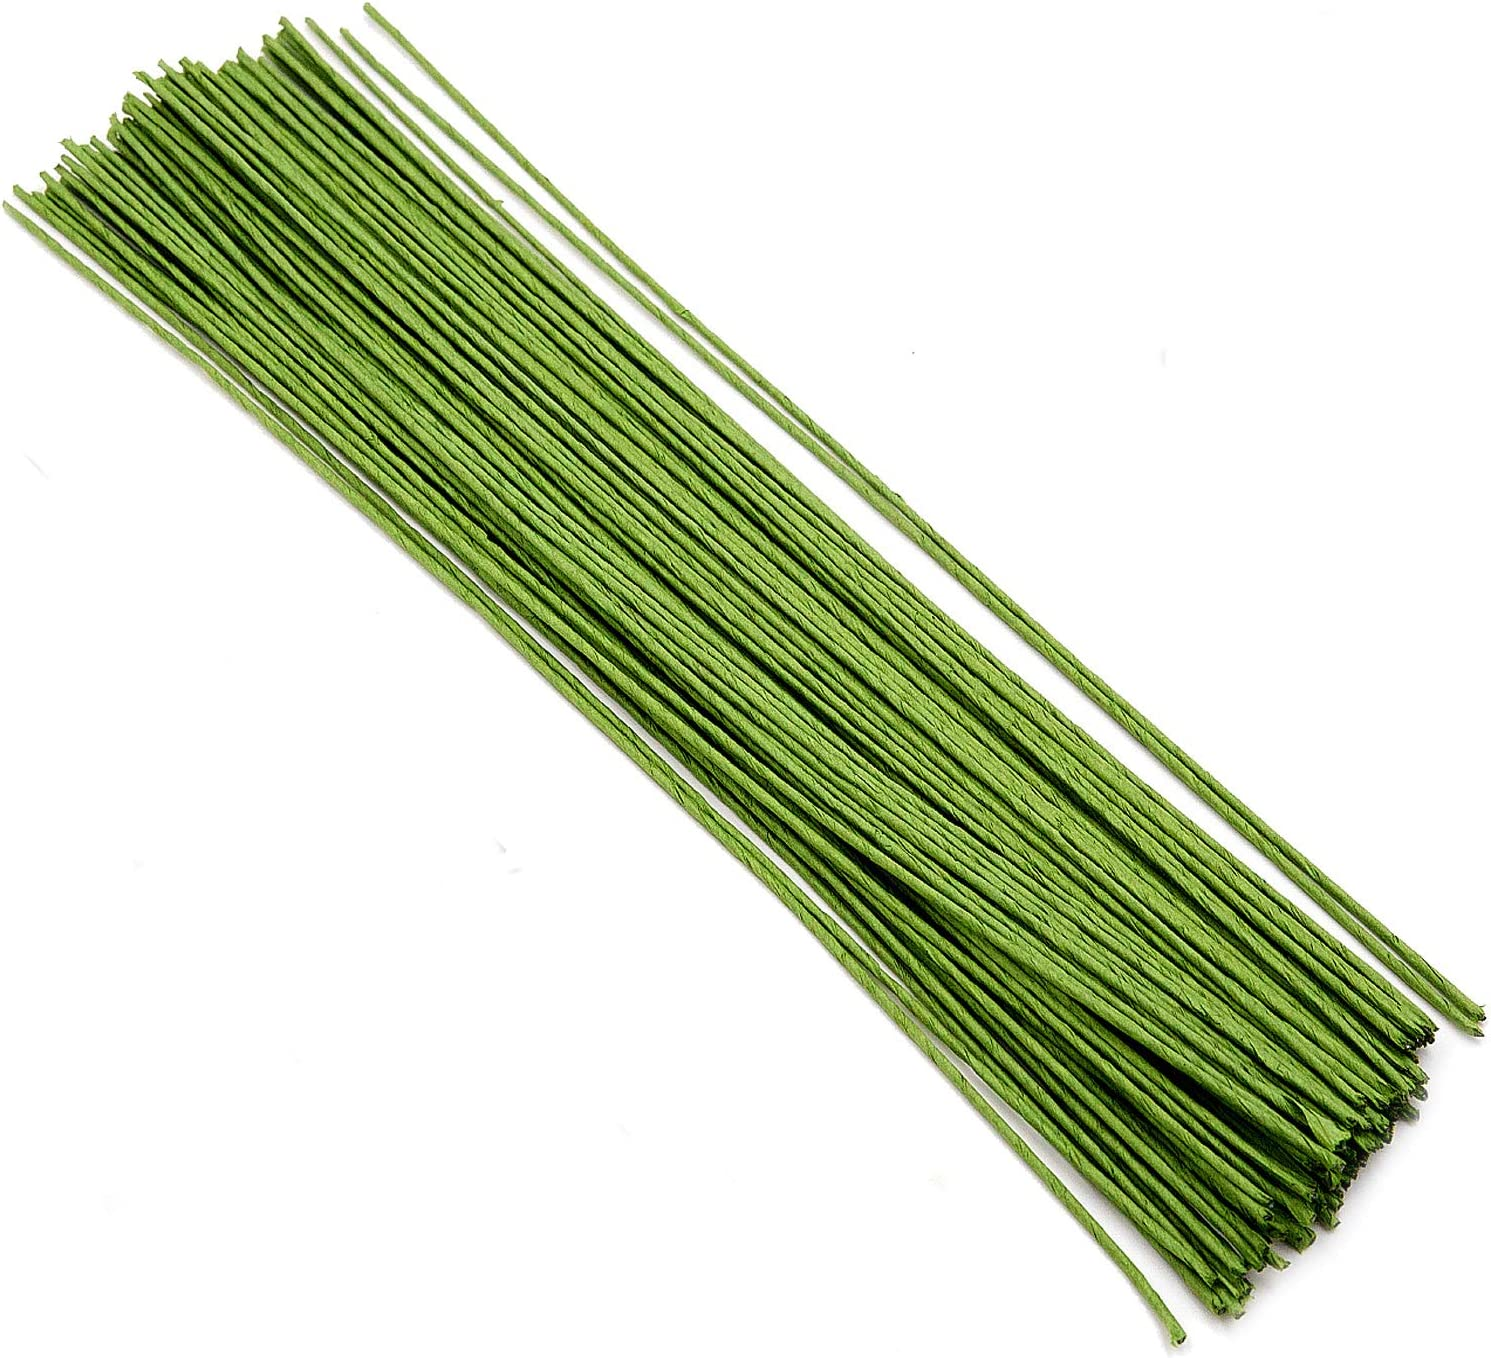 DIY Floral Arrangements and Decorations Floral Paper Wrapped Wire for Flower Making Green Floral Wire KEILEOHO 400 PCS Floral Stem Wire 14 Gauge 15.75 Inches Length